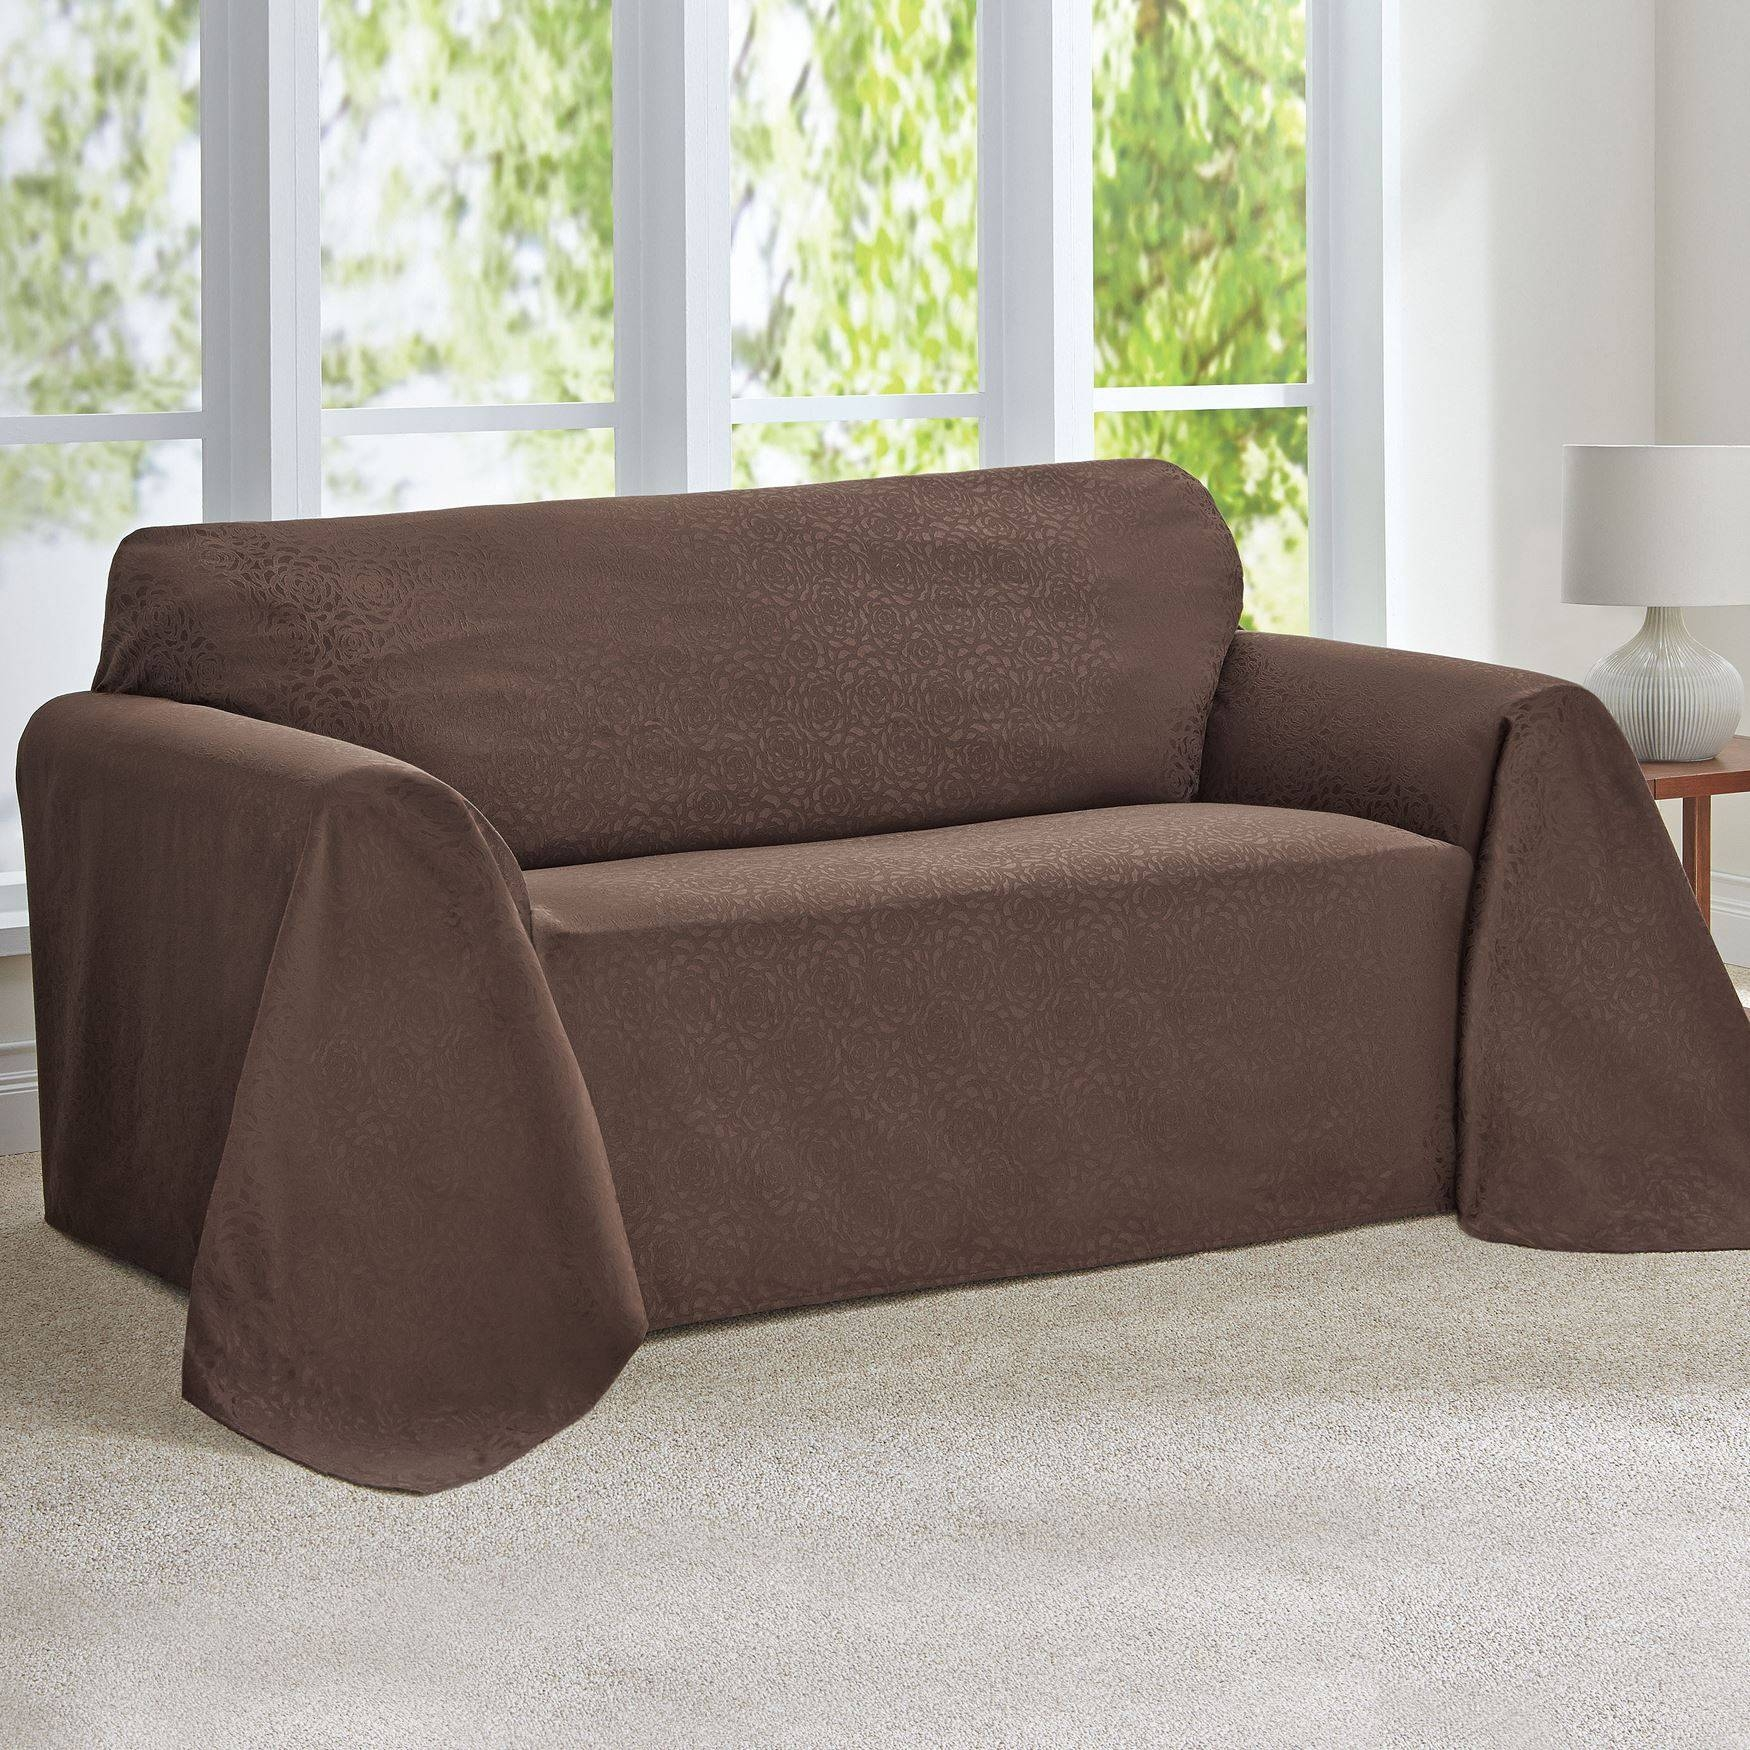 Furniture: Couch Covers At Walmart To Make Your Furniture Stylish With Slipcovers For Chairs And Sofas (View 7 of 15)